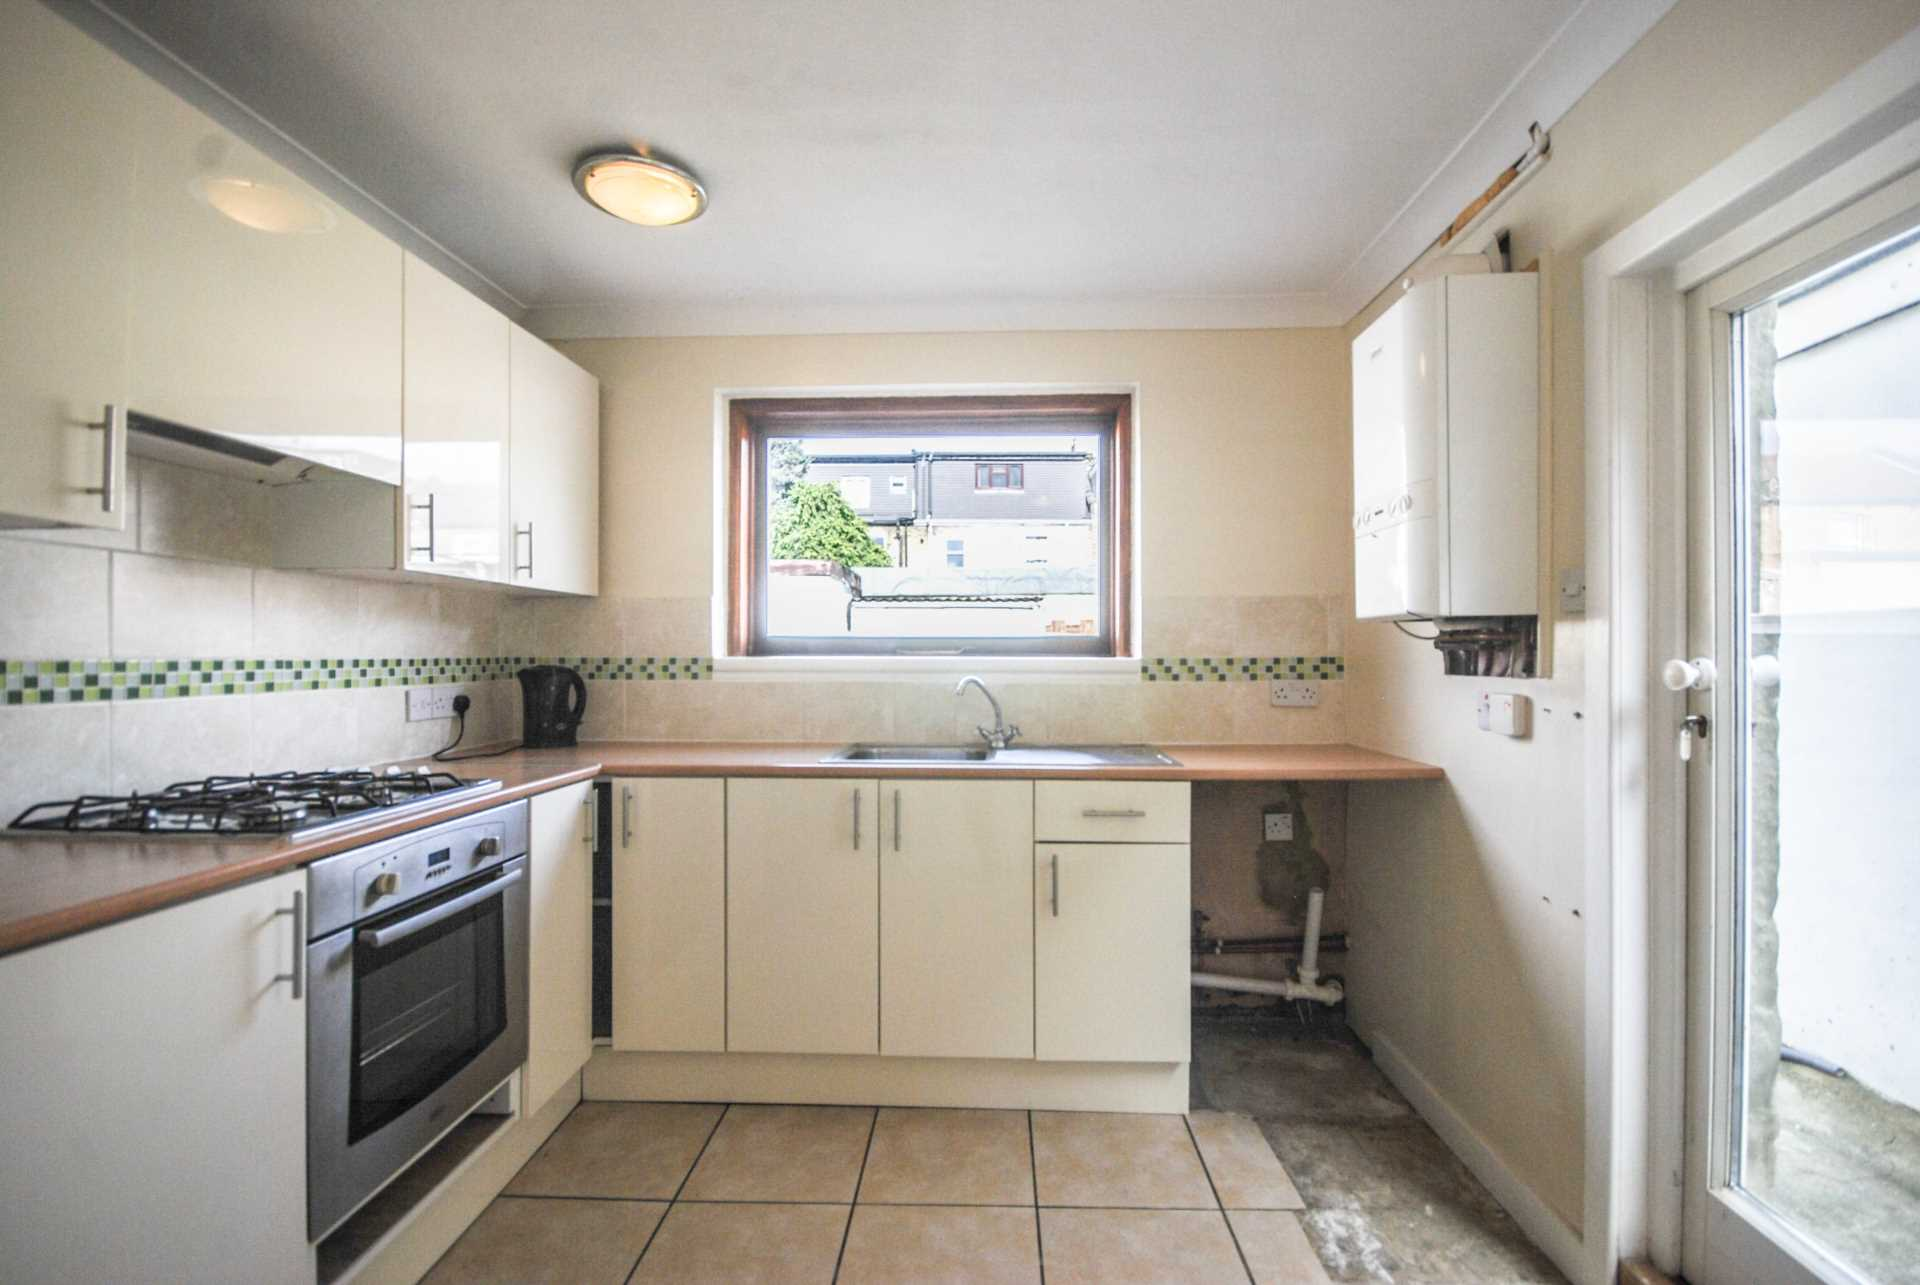 St Georges Road, LEYTON, Image 8